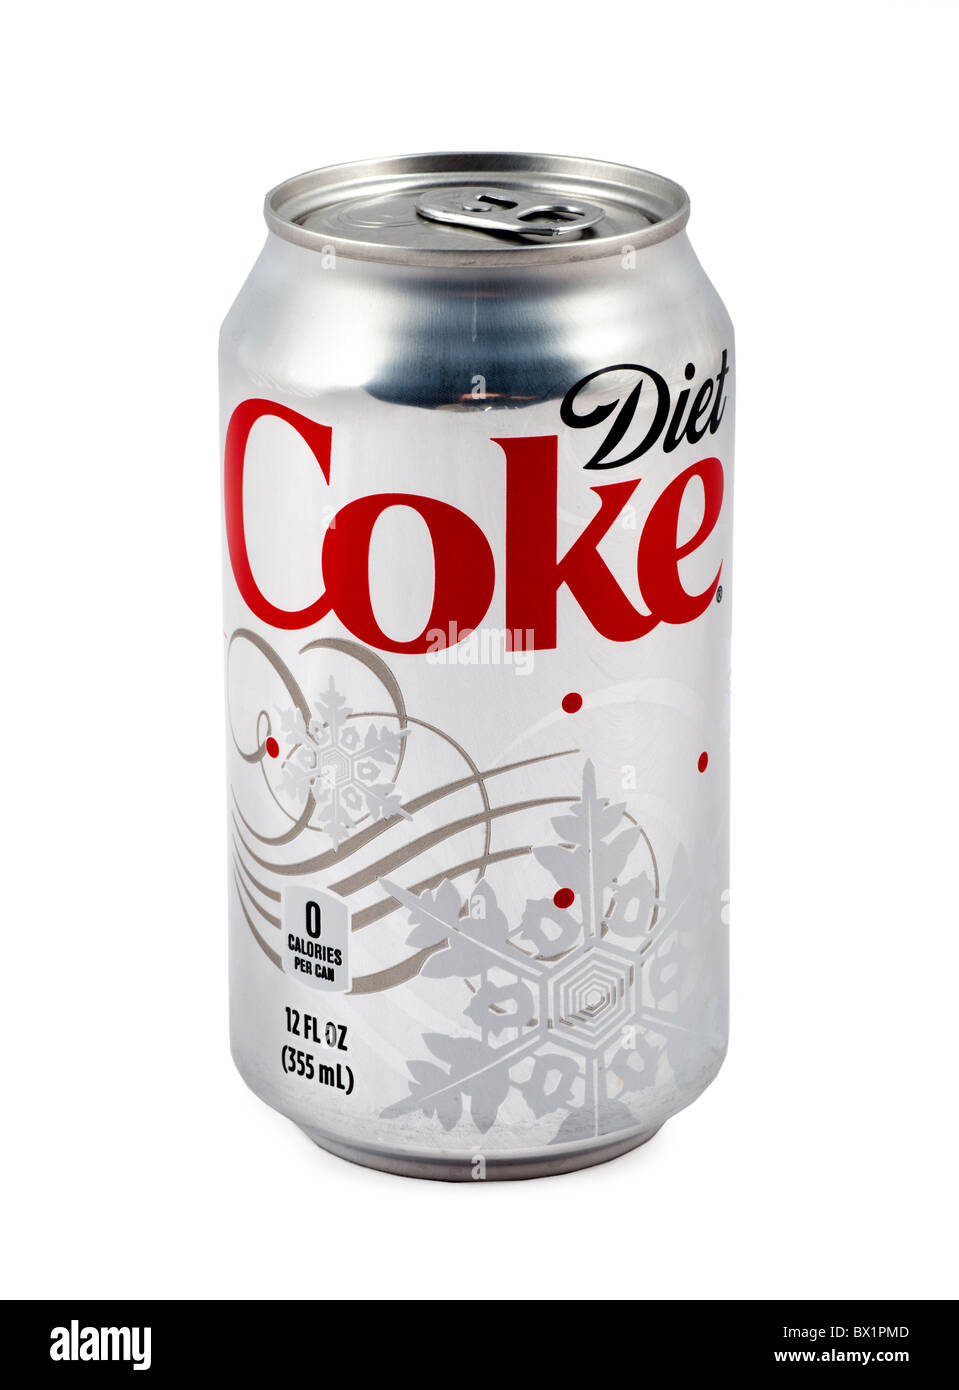 Can of Diet Coca Cola, USA - Stock Image